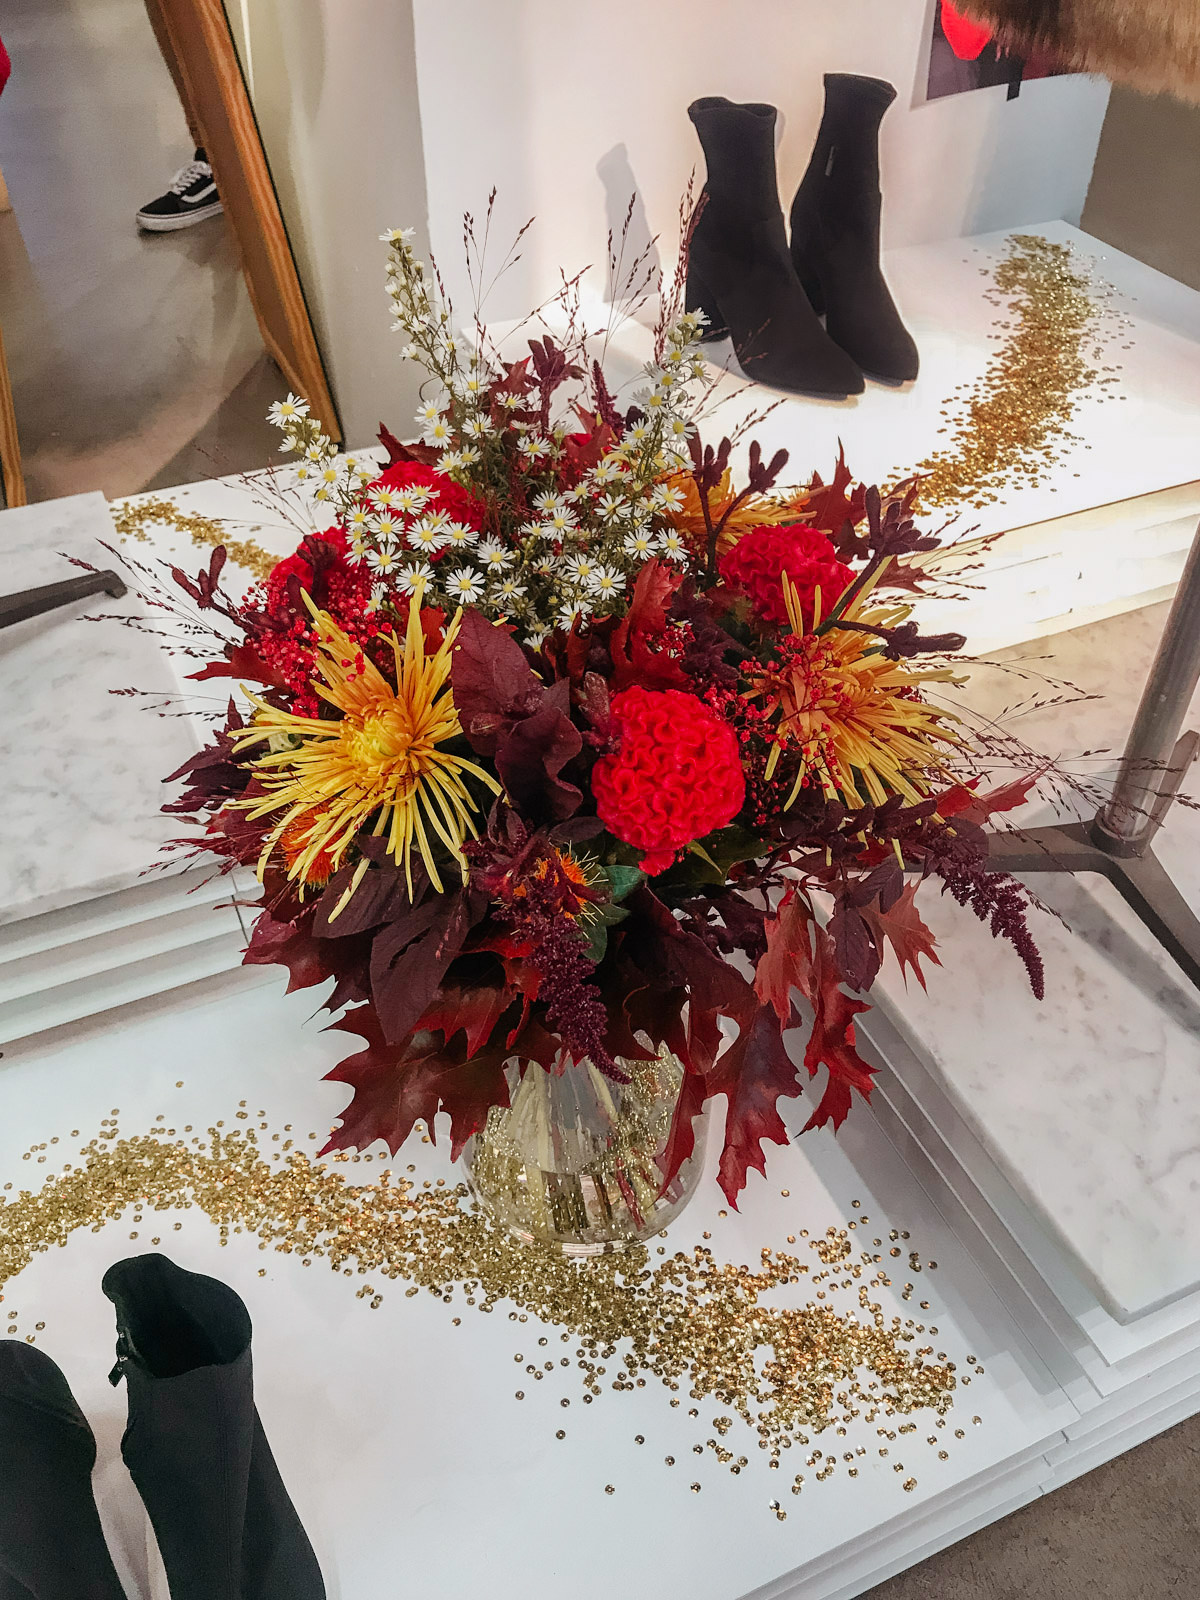 Blog-Mode-And-The-City-Lifestyle-Cinq-Petites-Choses-223-bouquet-and-other-stories